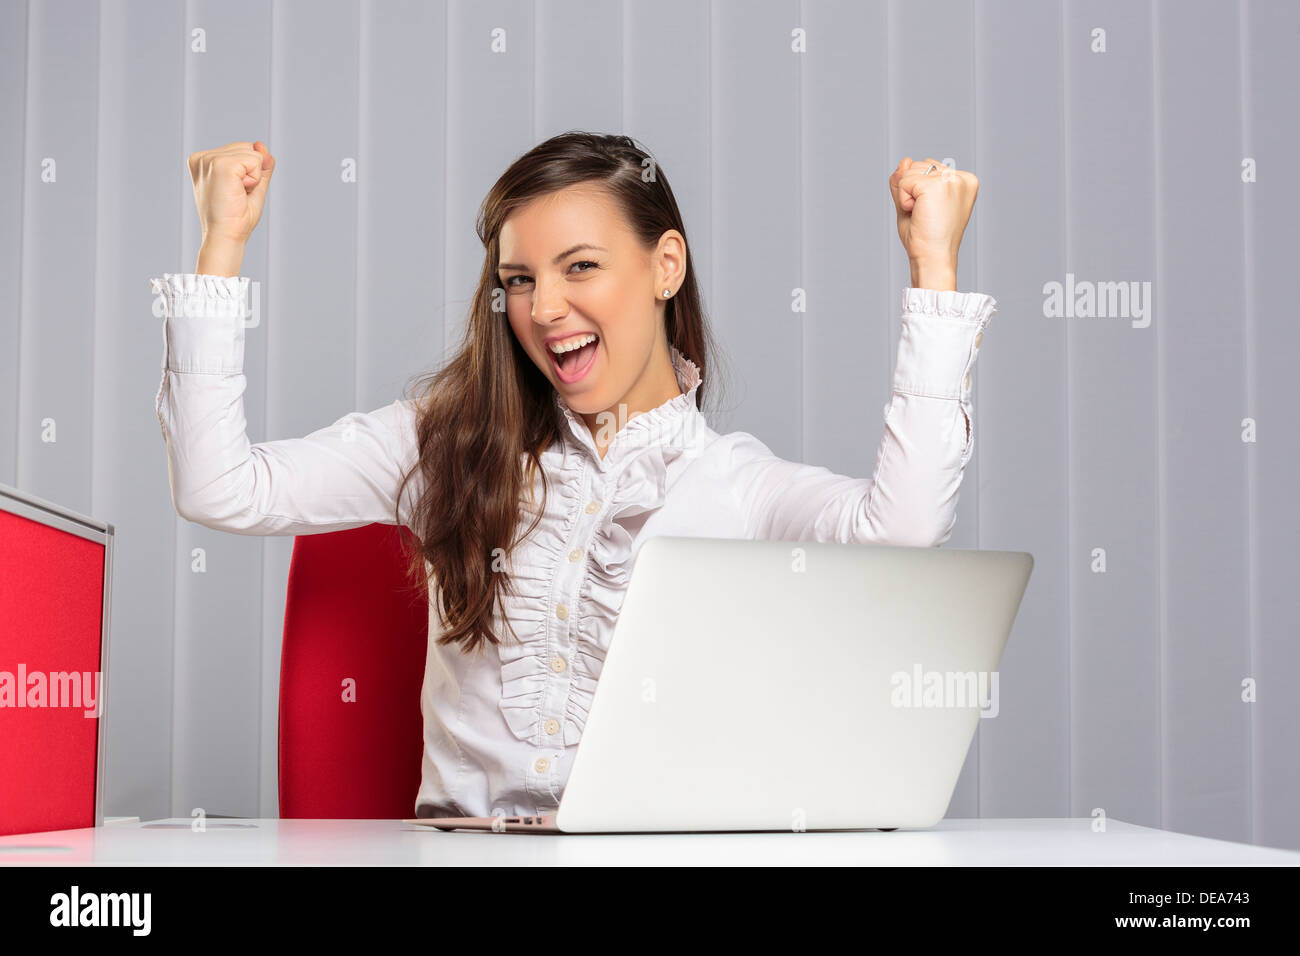 Excited female executive screaming and celebrating with raised clenched fists her business victory in the office. - Stock Image